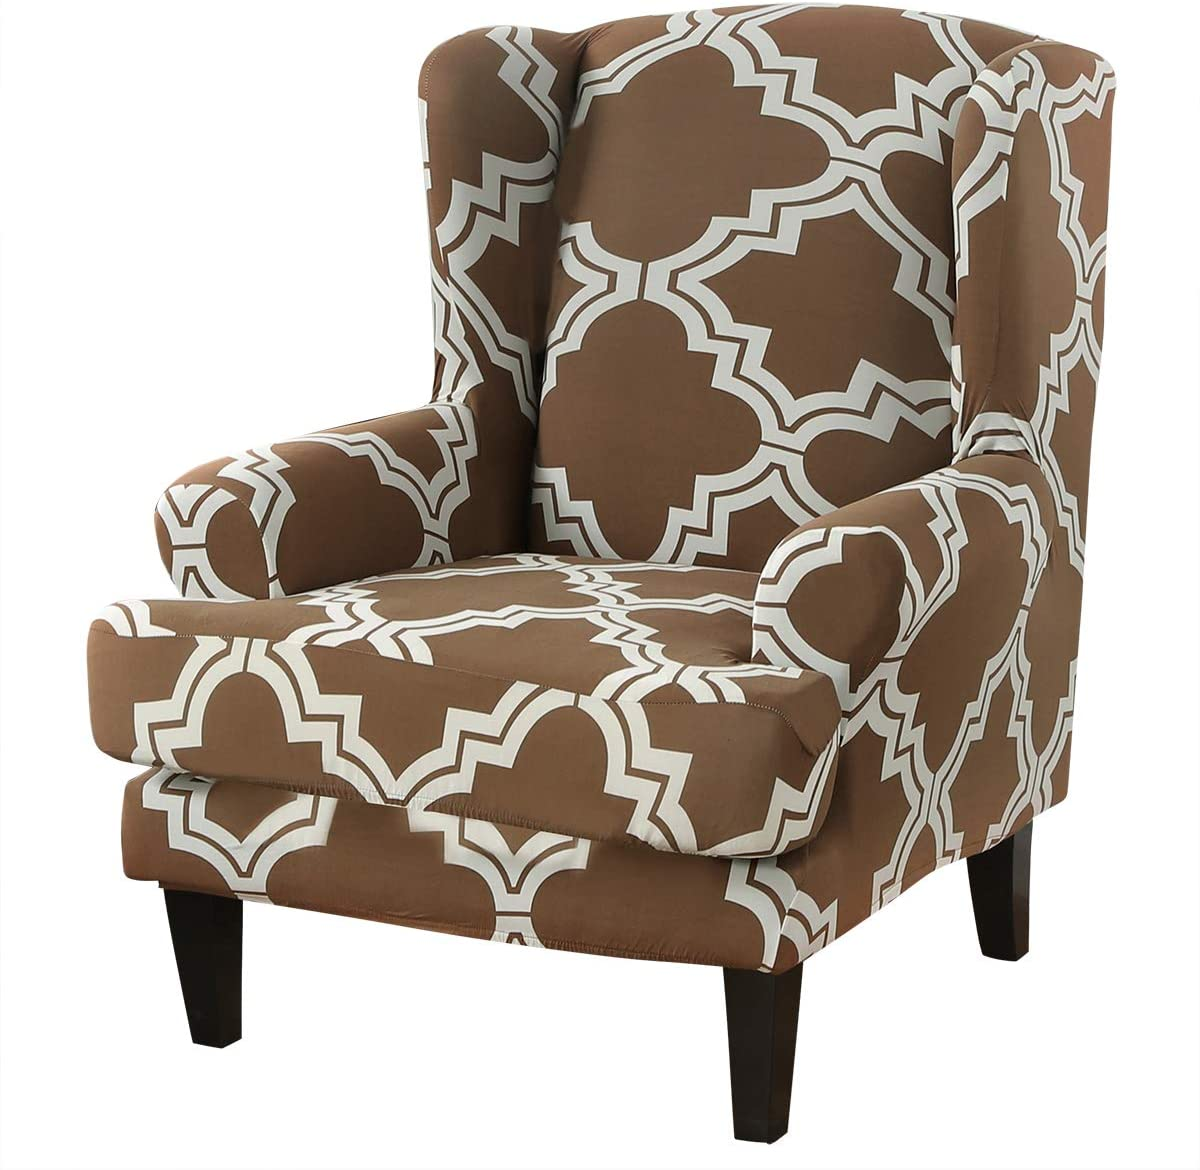 ele ELEOPTION Stretch Printed Wingback Sofa Chair Cover, Modern Pattern 2-Piece Sofa Cover, Armchair Slipcover Furniture Protector Couch Super Soft Slipcover Machine Washable (Pattern-10)